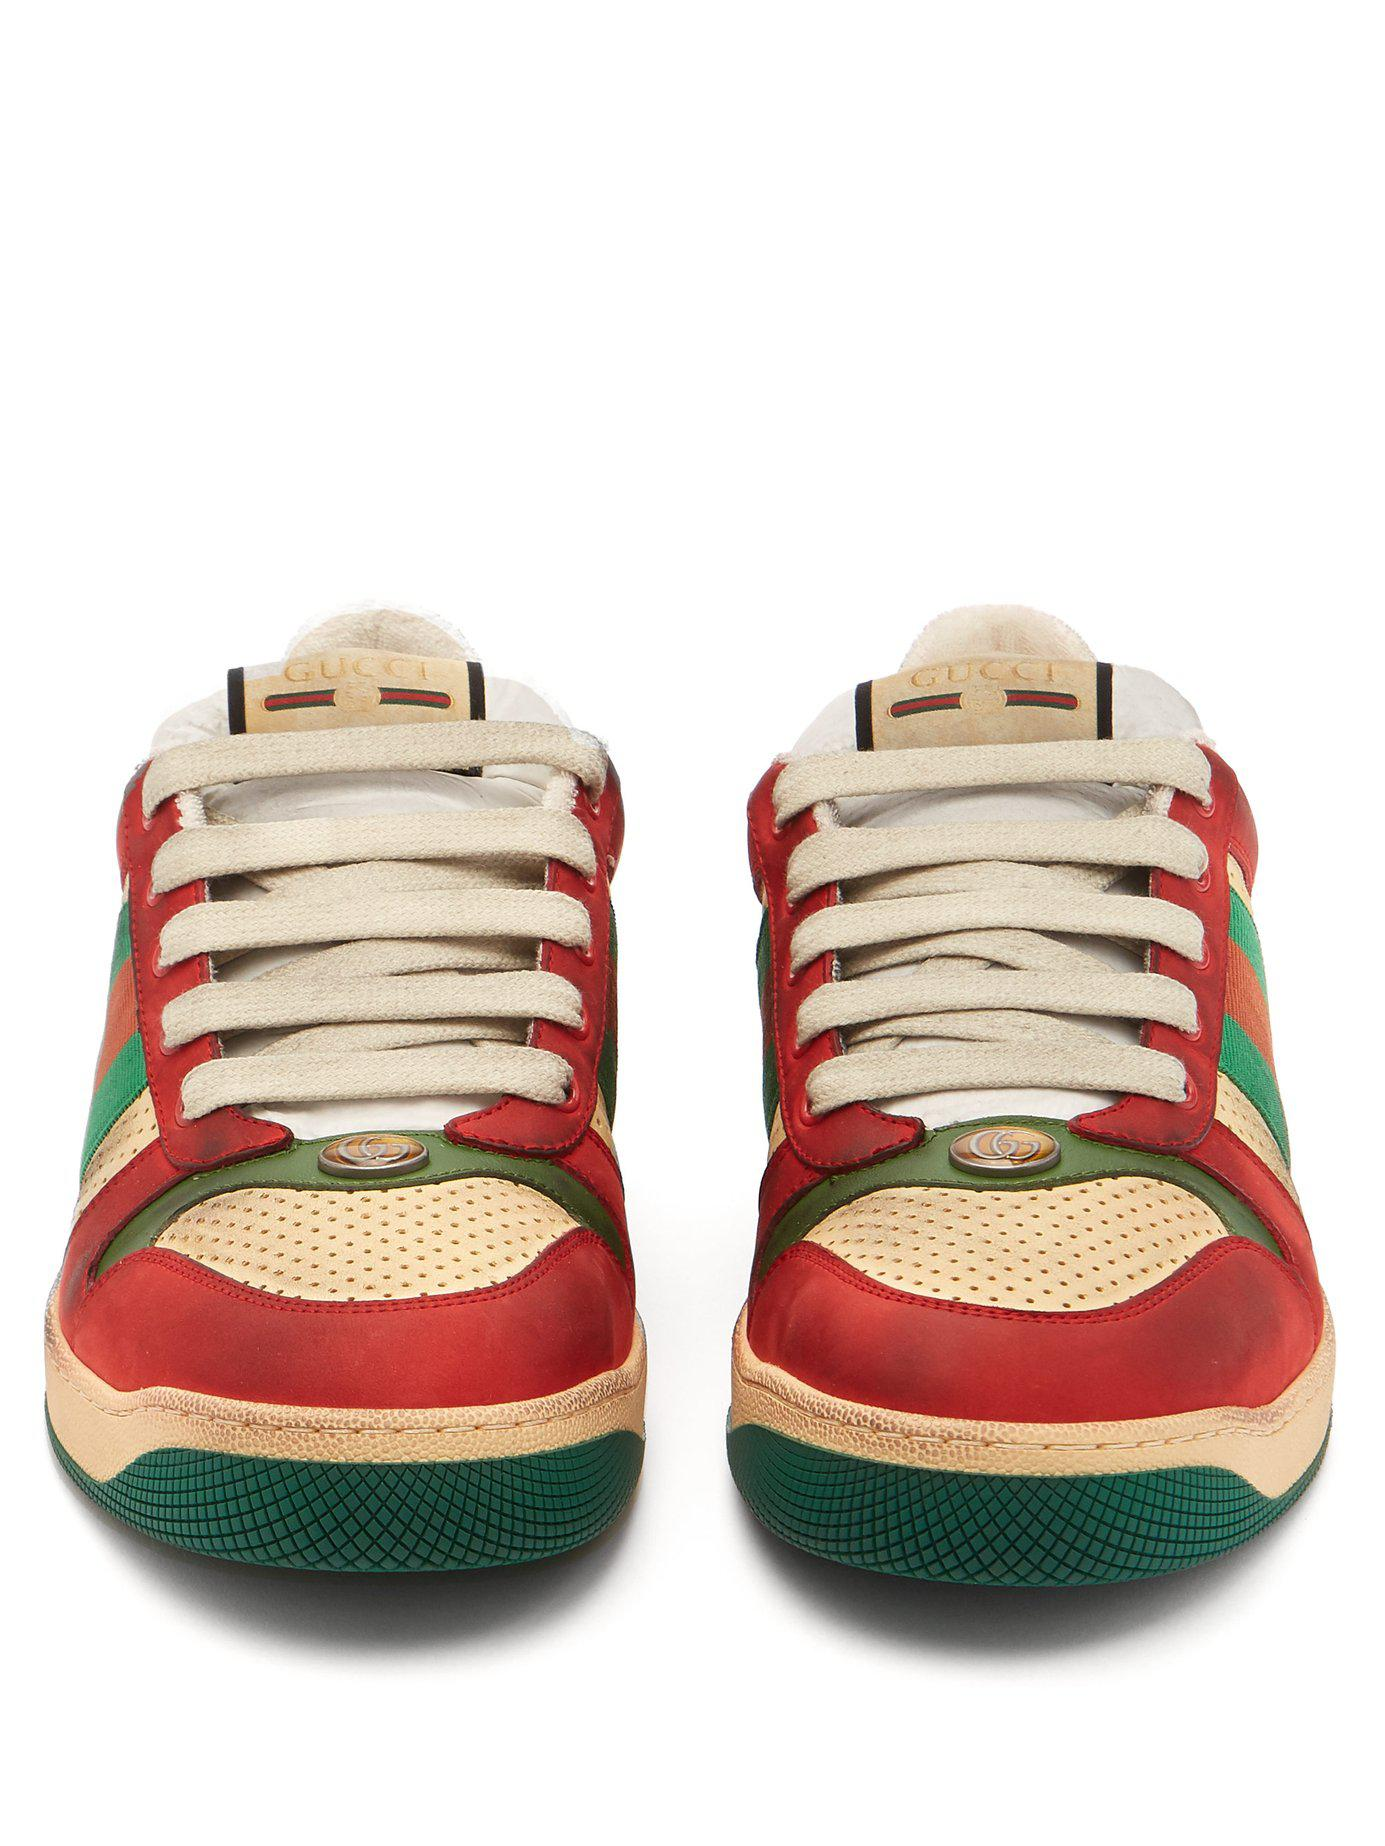 35dc70dd6c3 Gucci - Multicolor Virtus Low Top Distressed Leather Trainers for Men -  Lyst. View fullscreen